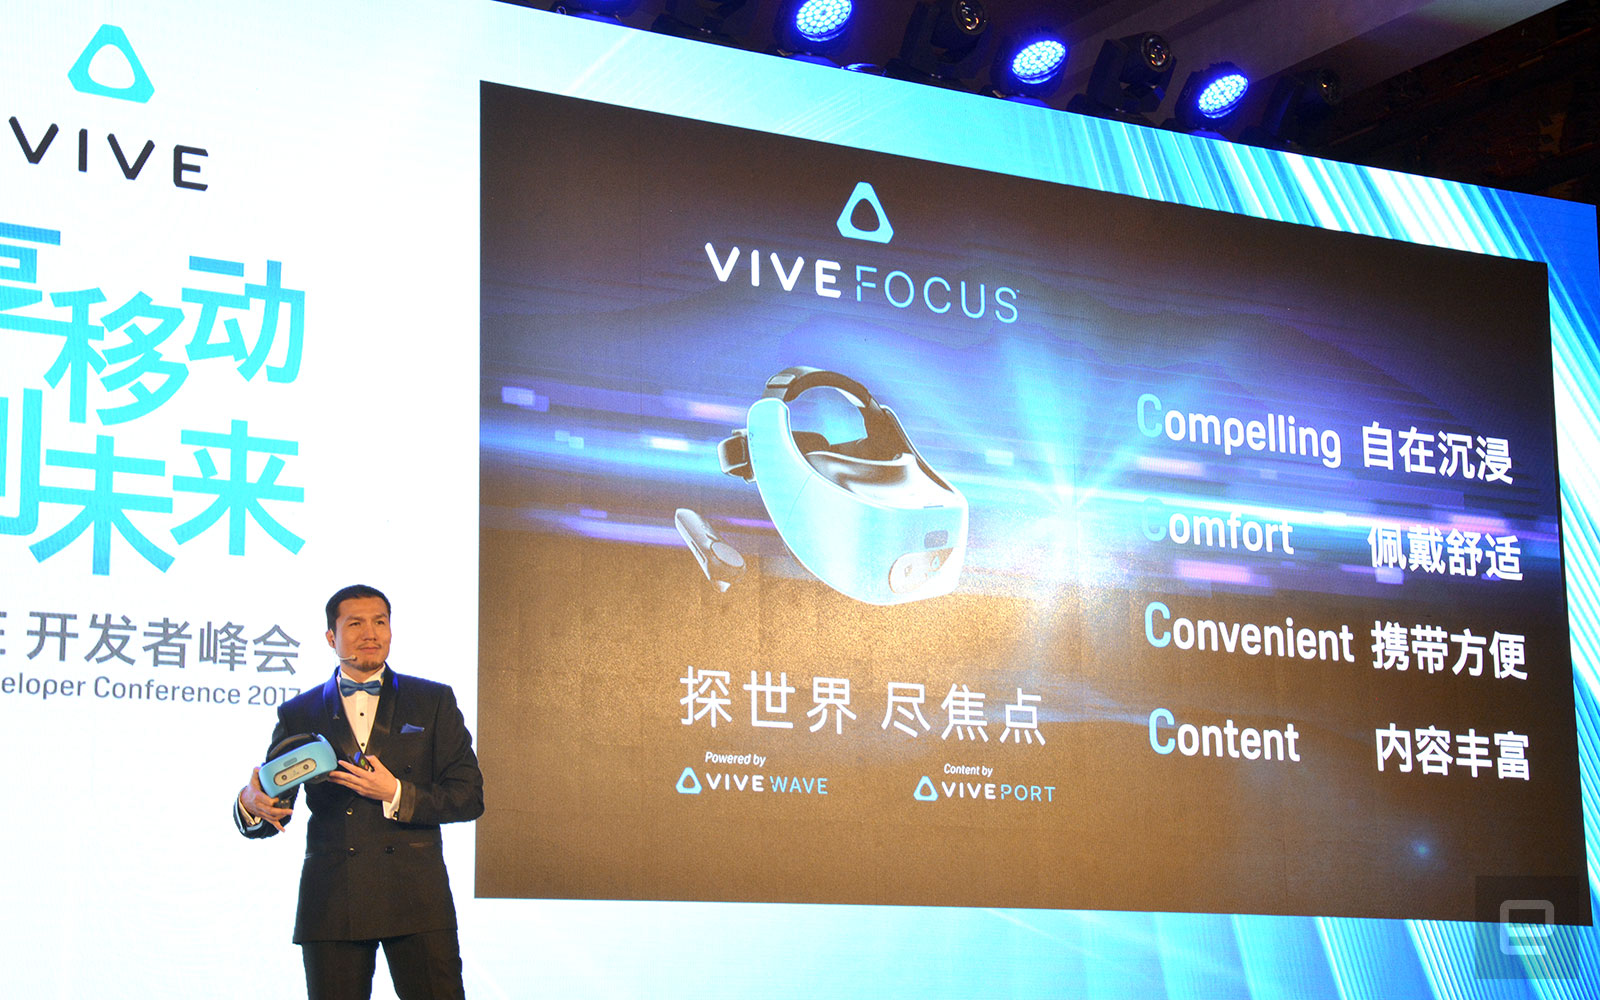 HTC unveils its standalone VR headset the Vive Focus